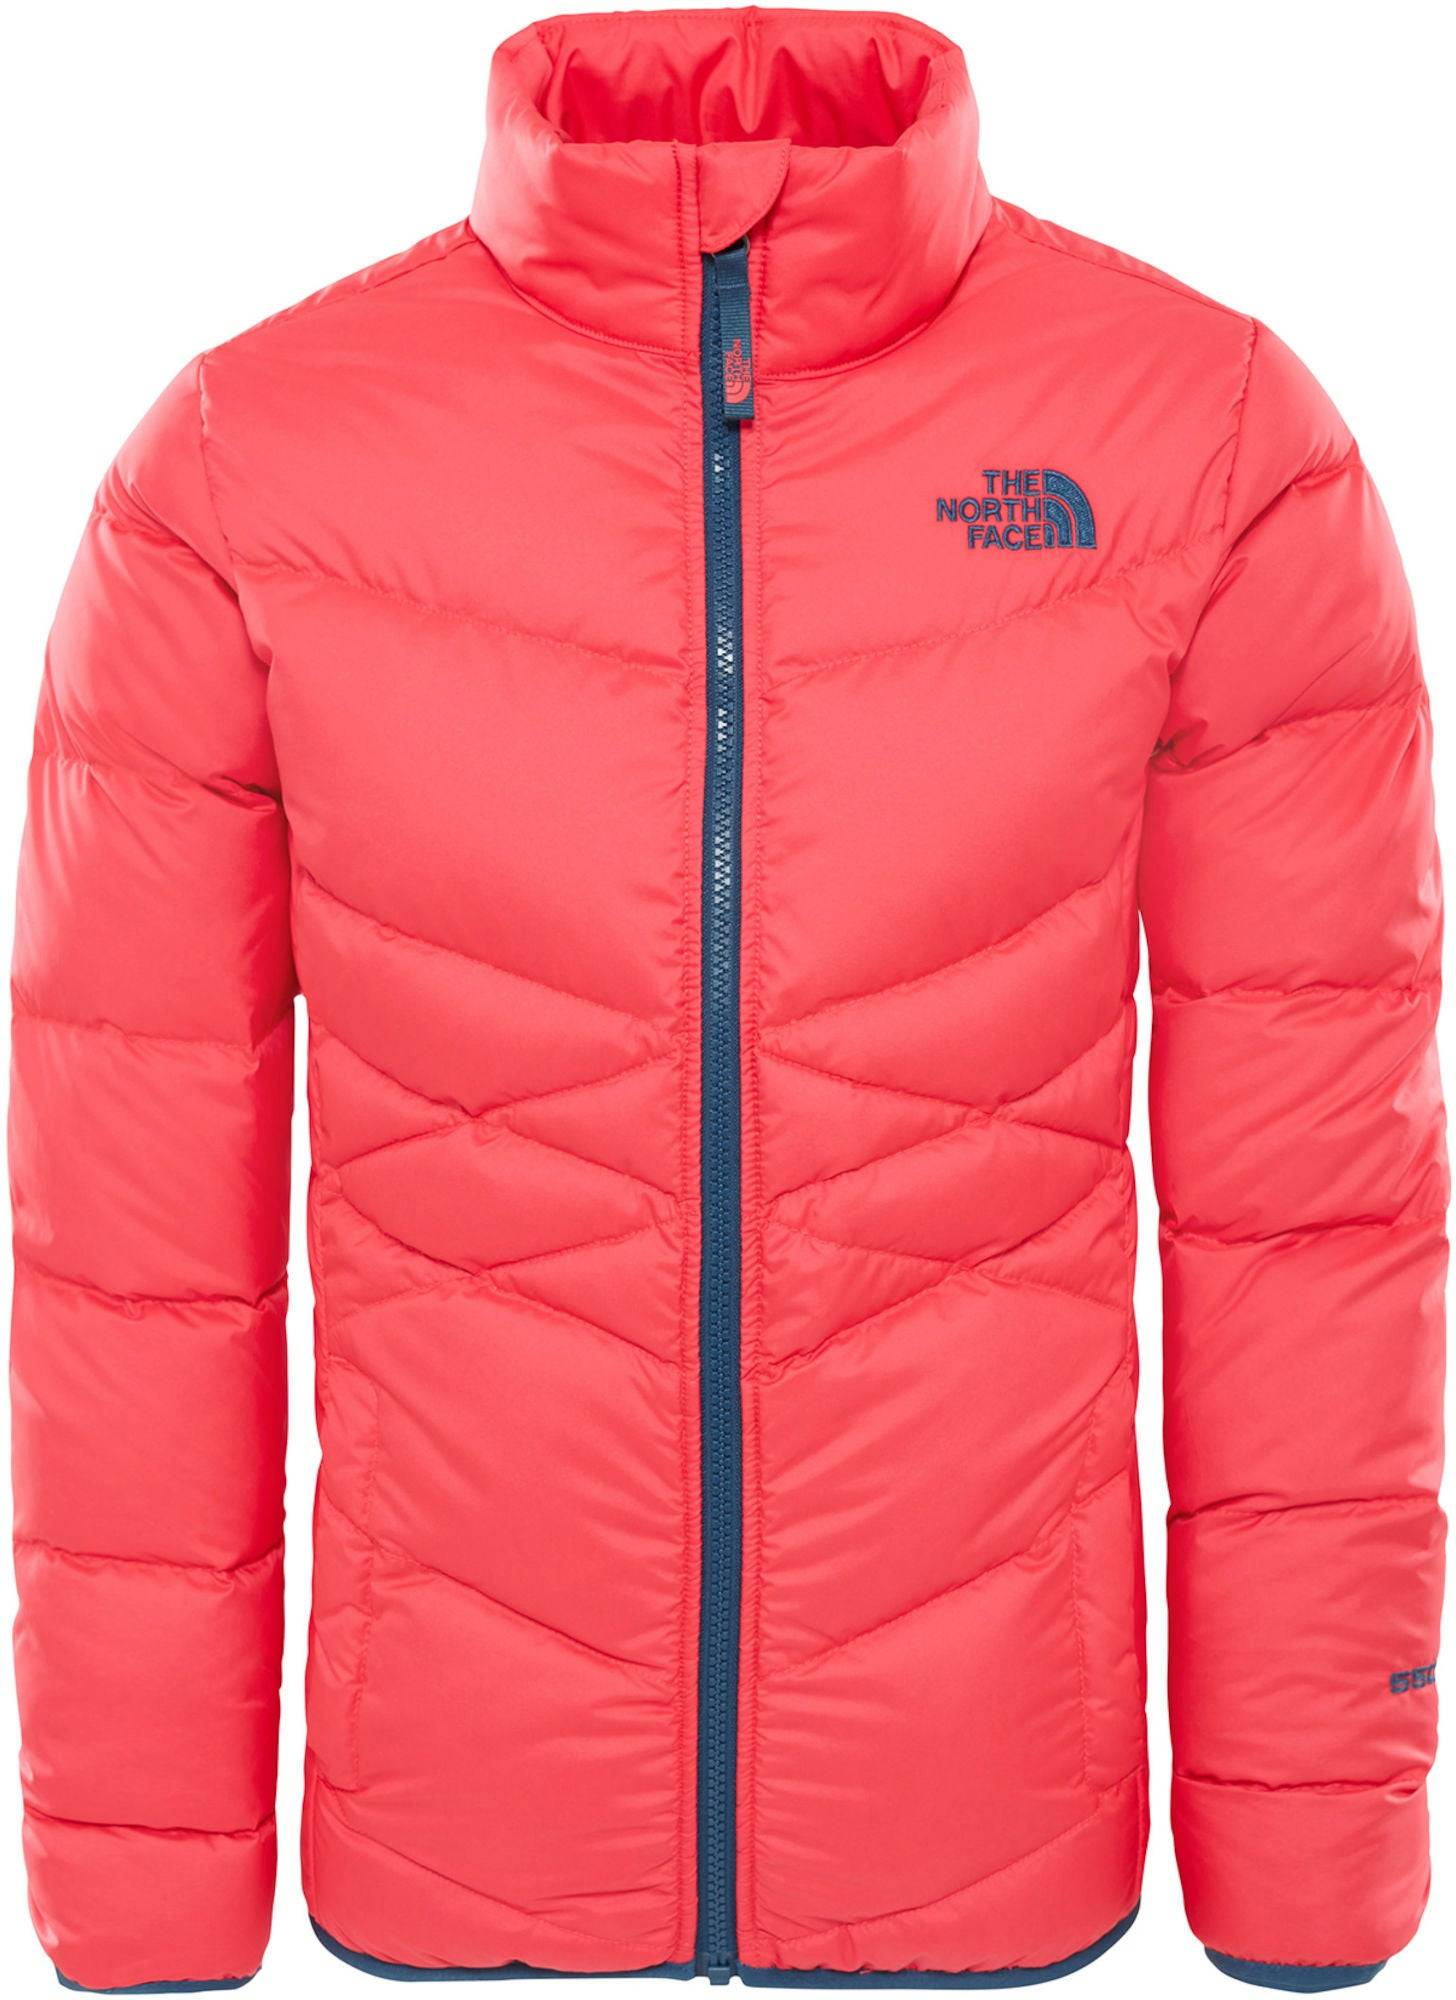 The North Face Andes Down Jacka, Atomic Pink XL